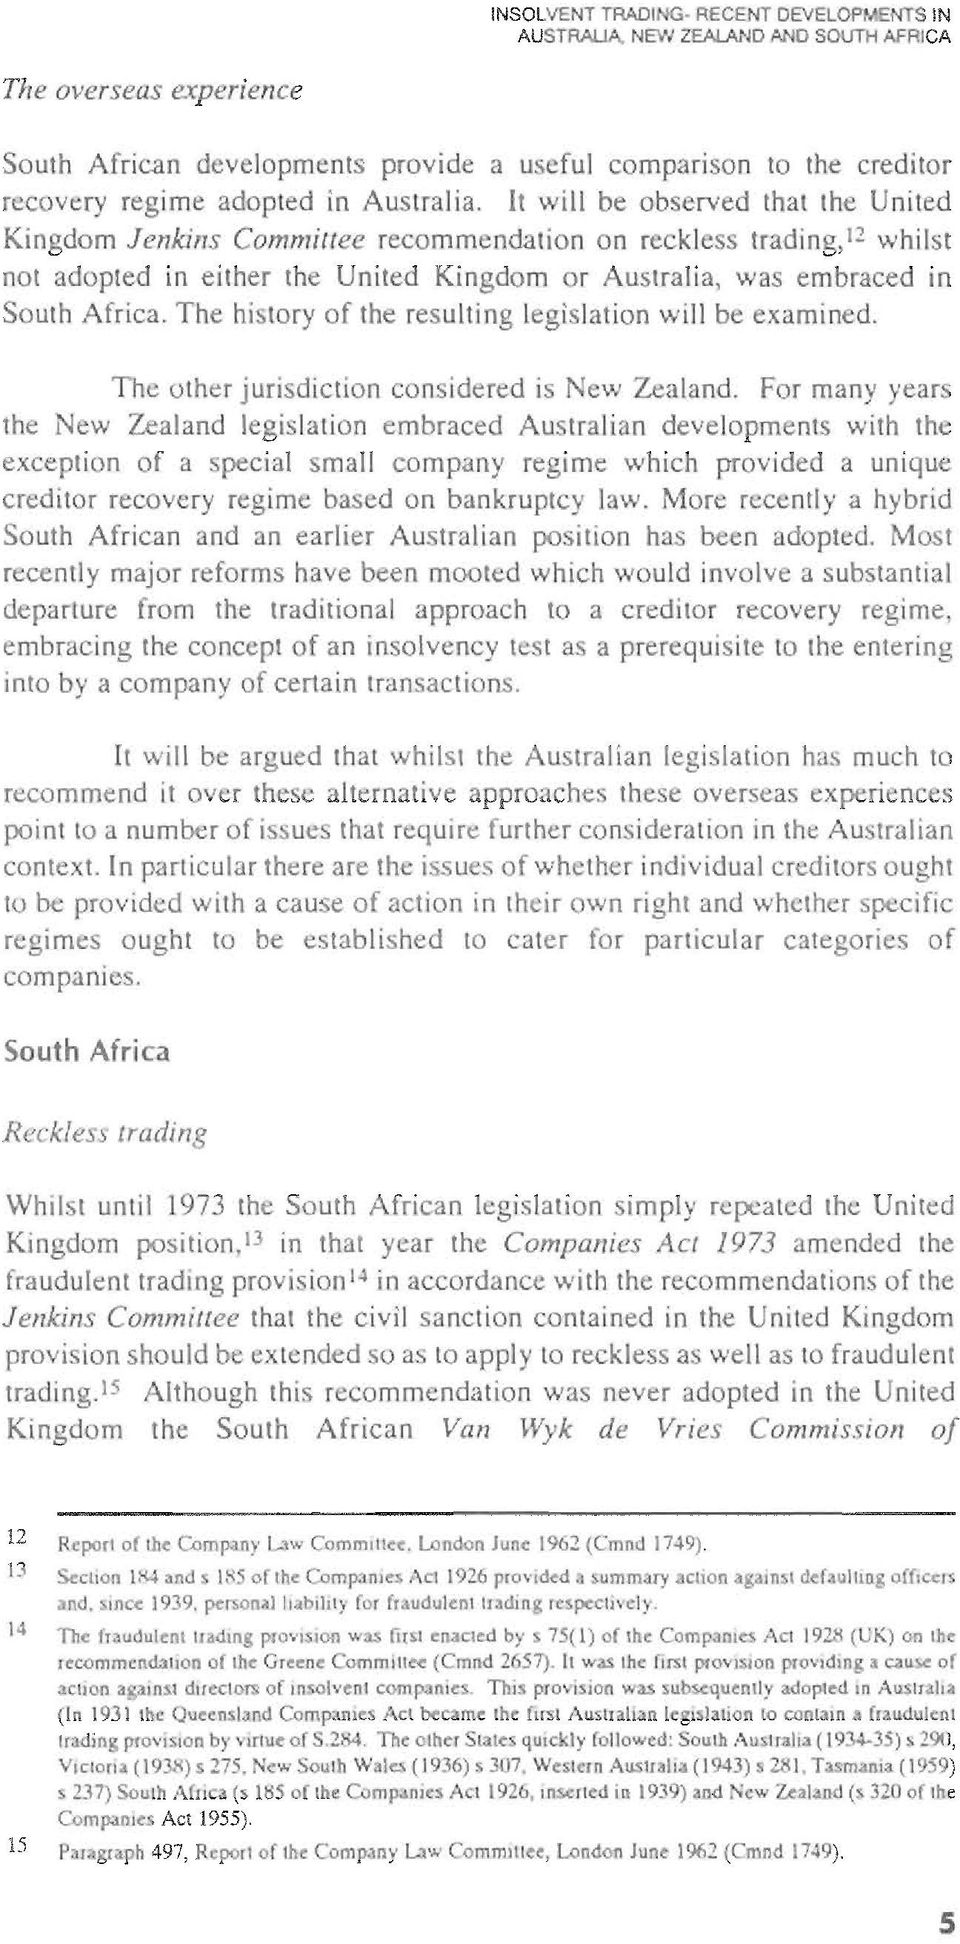 [t will be observed that the United Kingdom Jenkins Committee recommendation on reckless trading, 12 whilst not adopted in either the United Kingdom or Australia, was embraced in South Africa.